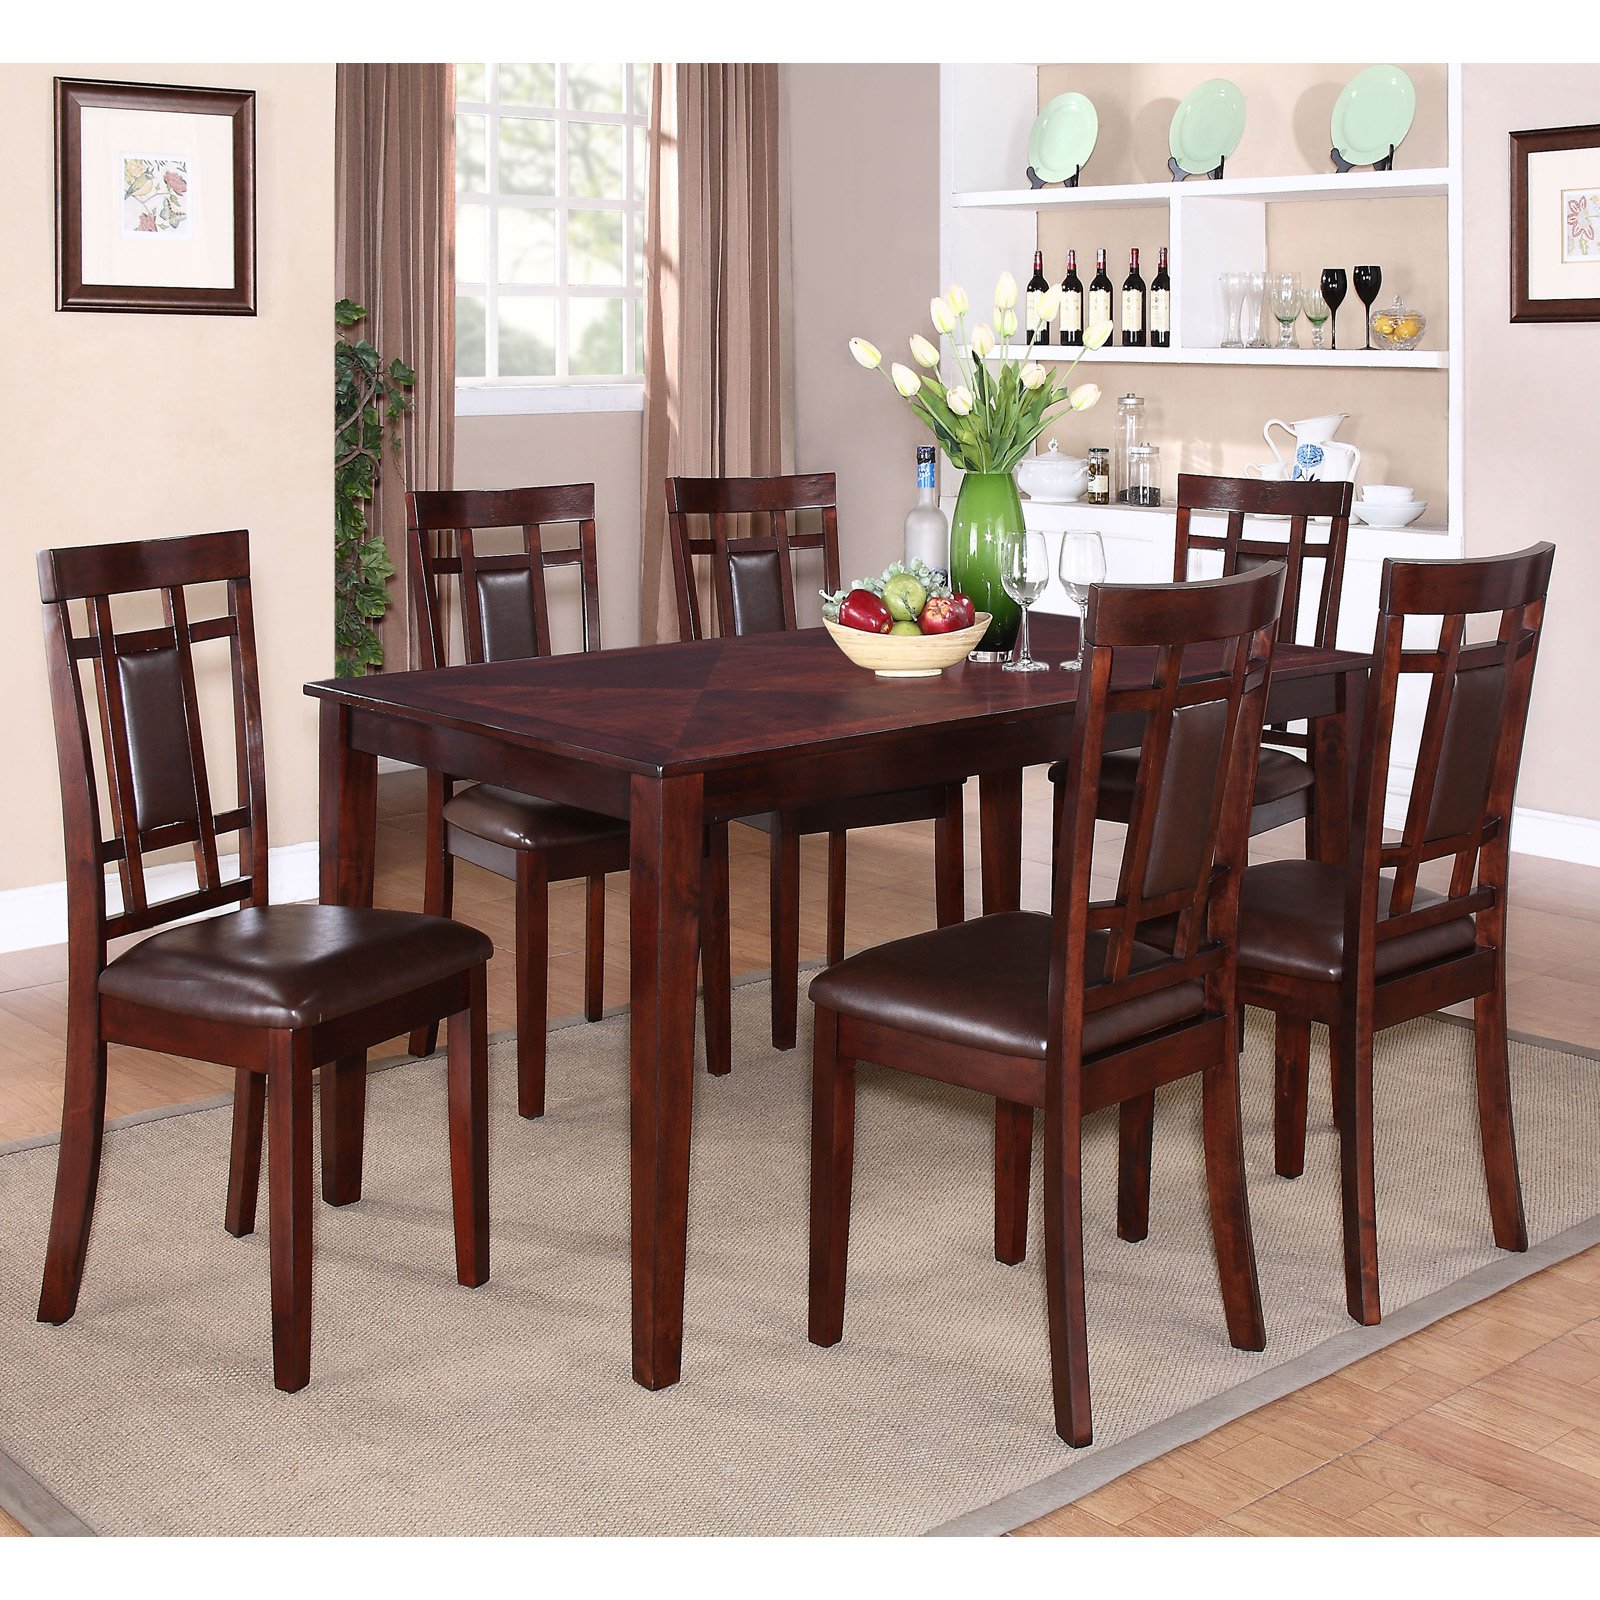 Beautiful Standard Furniture Westlake 7 Piece Dining Table Set   Rich Golden Brown